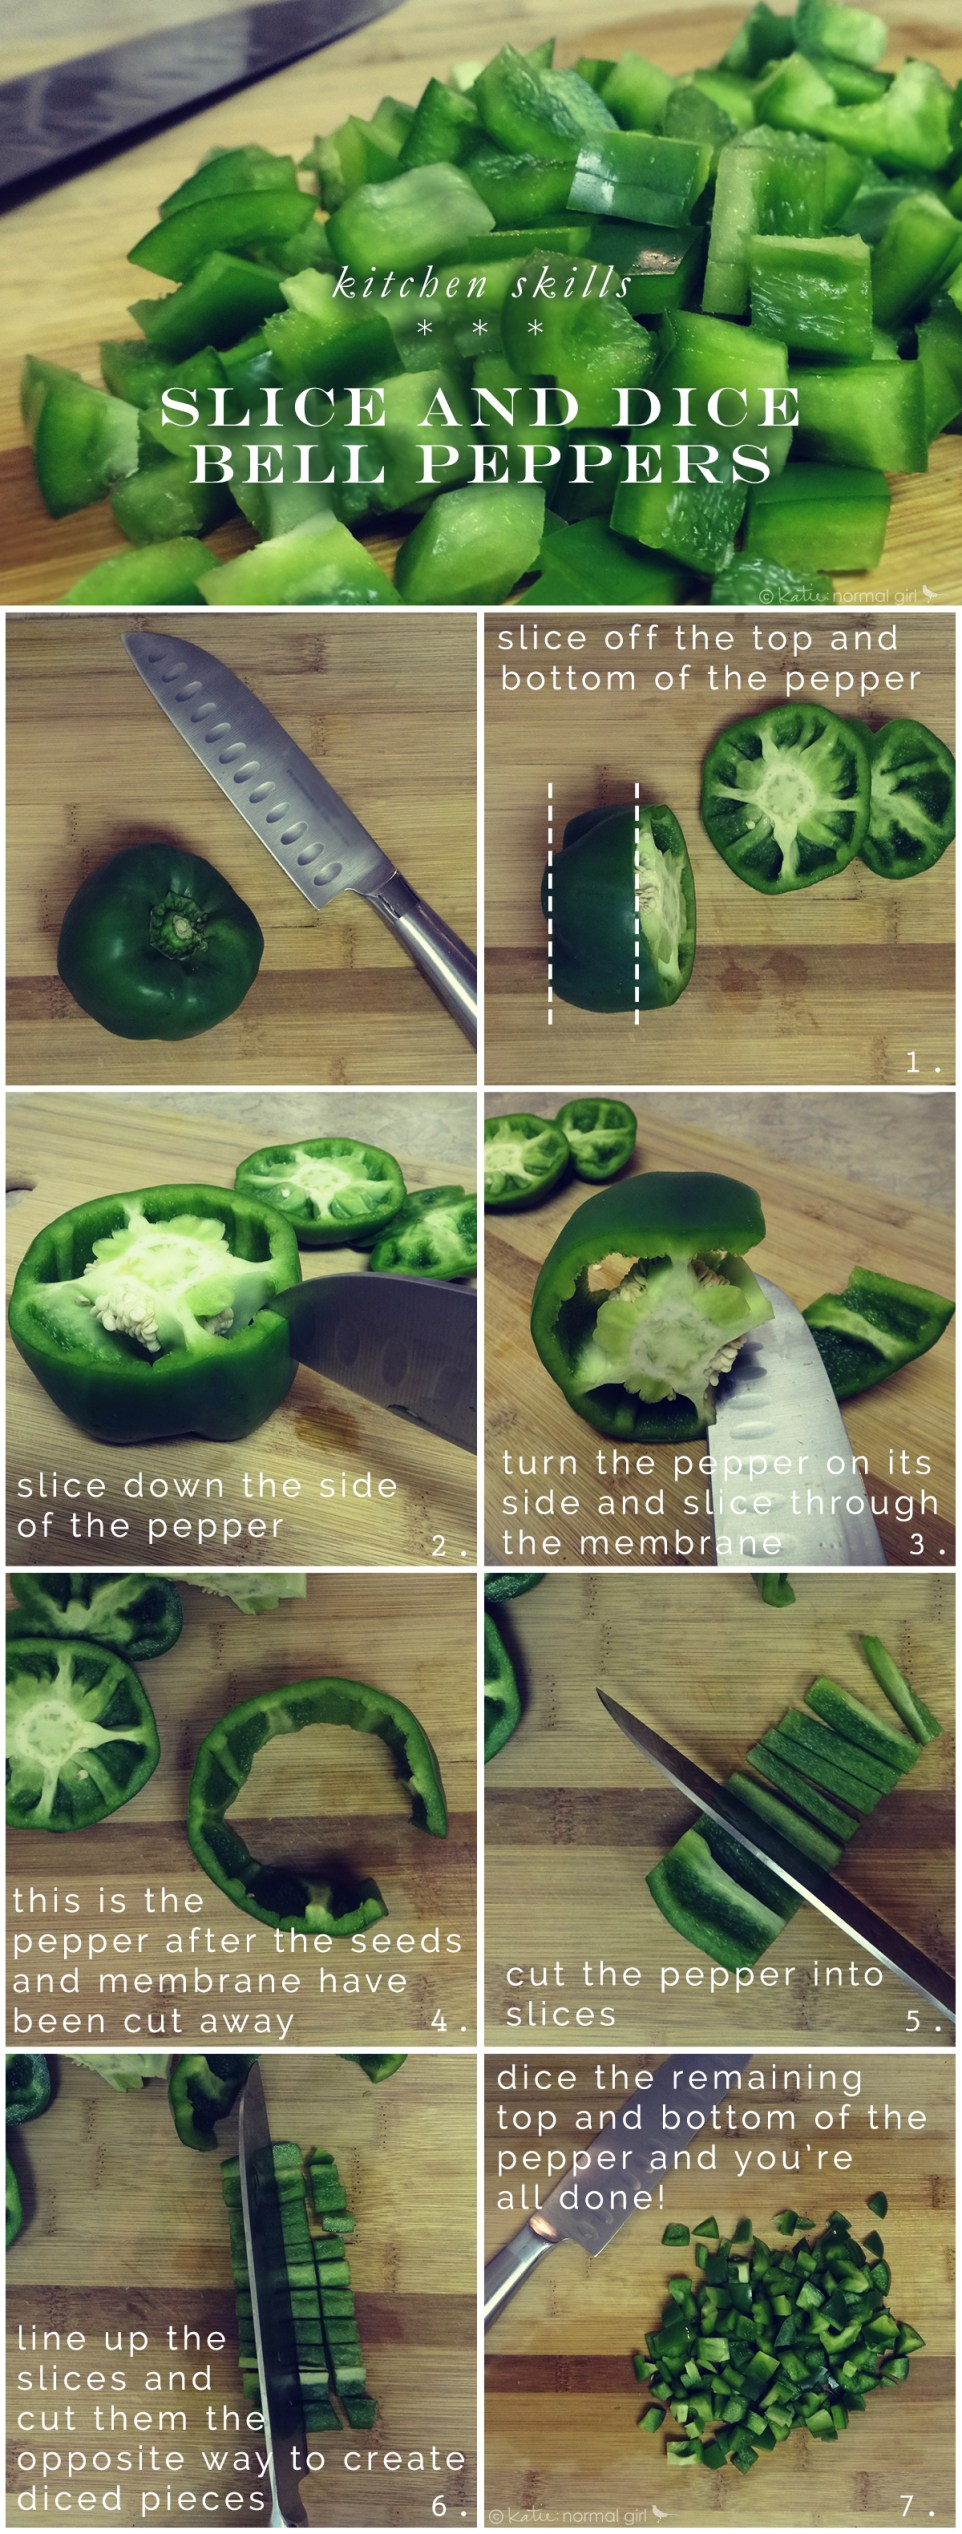 How to slice and dice a bell pepper from katienormalgirl.com #lifeskills #cooking